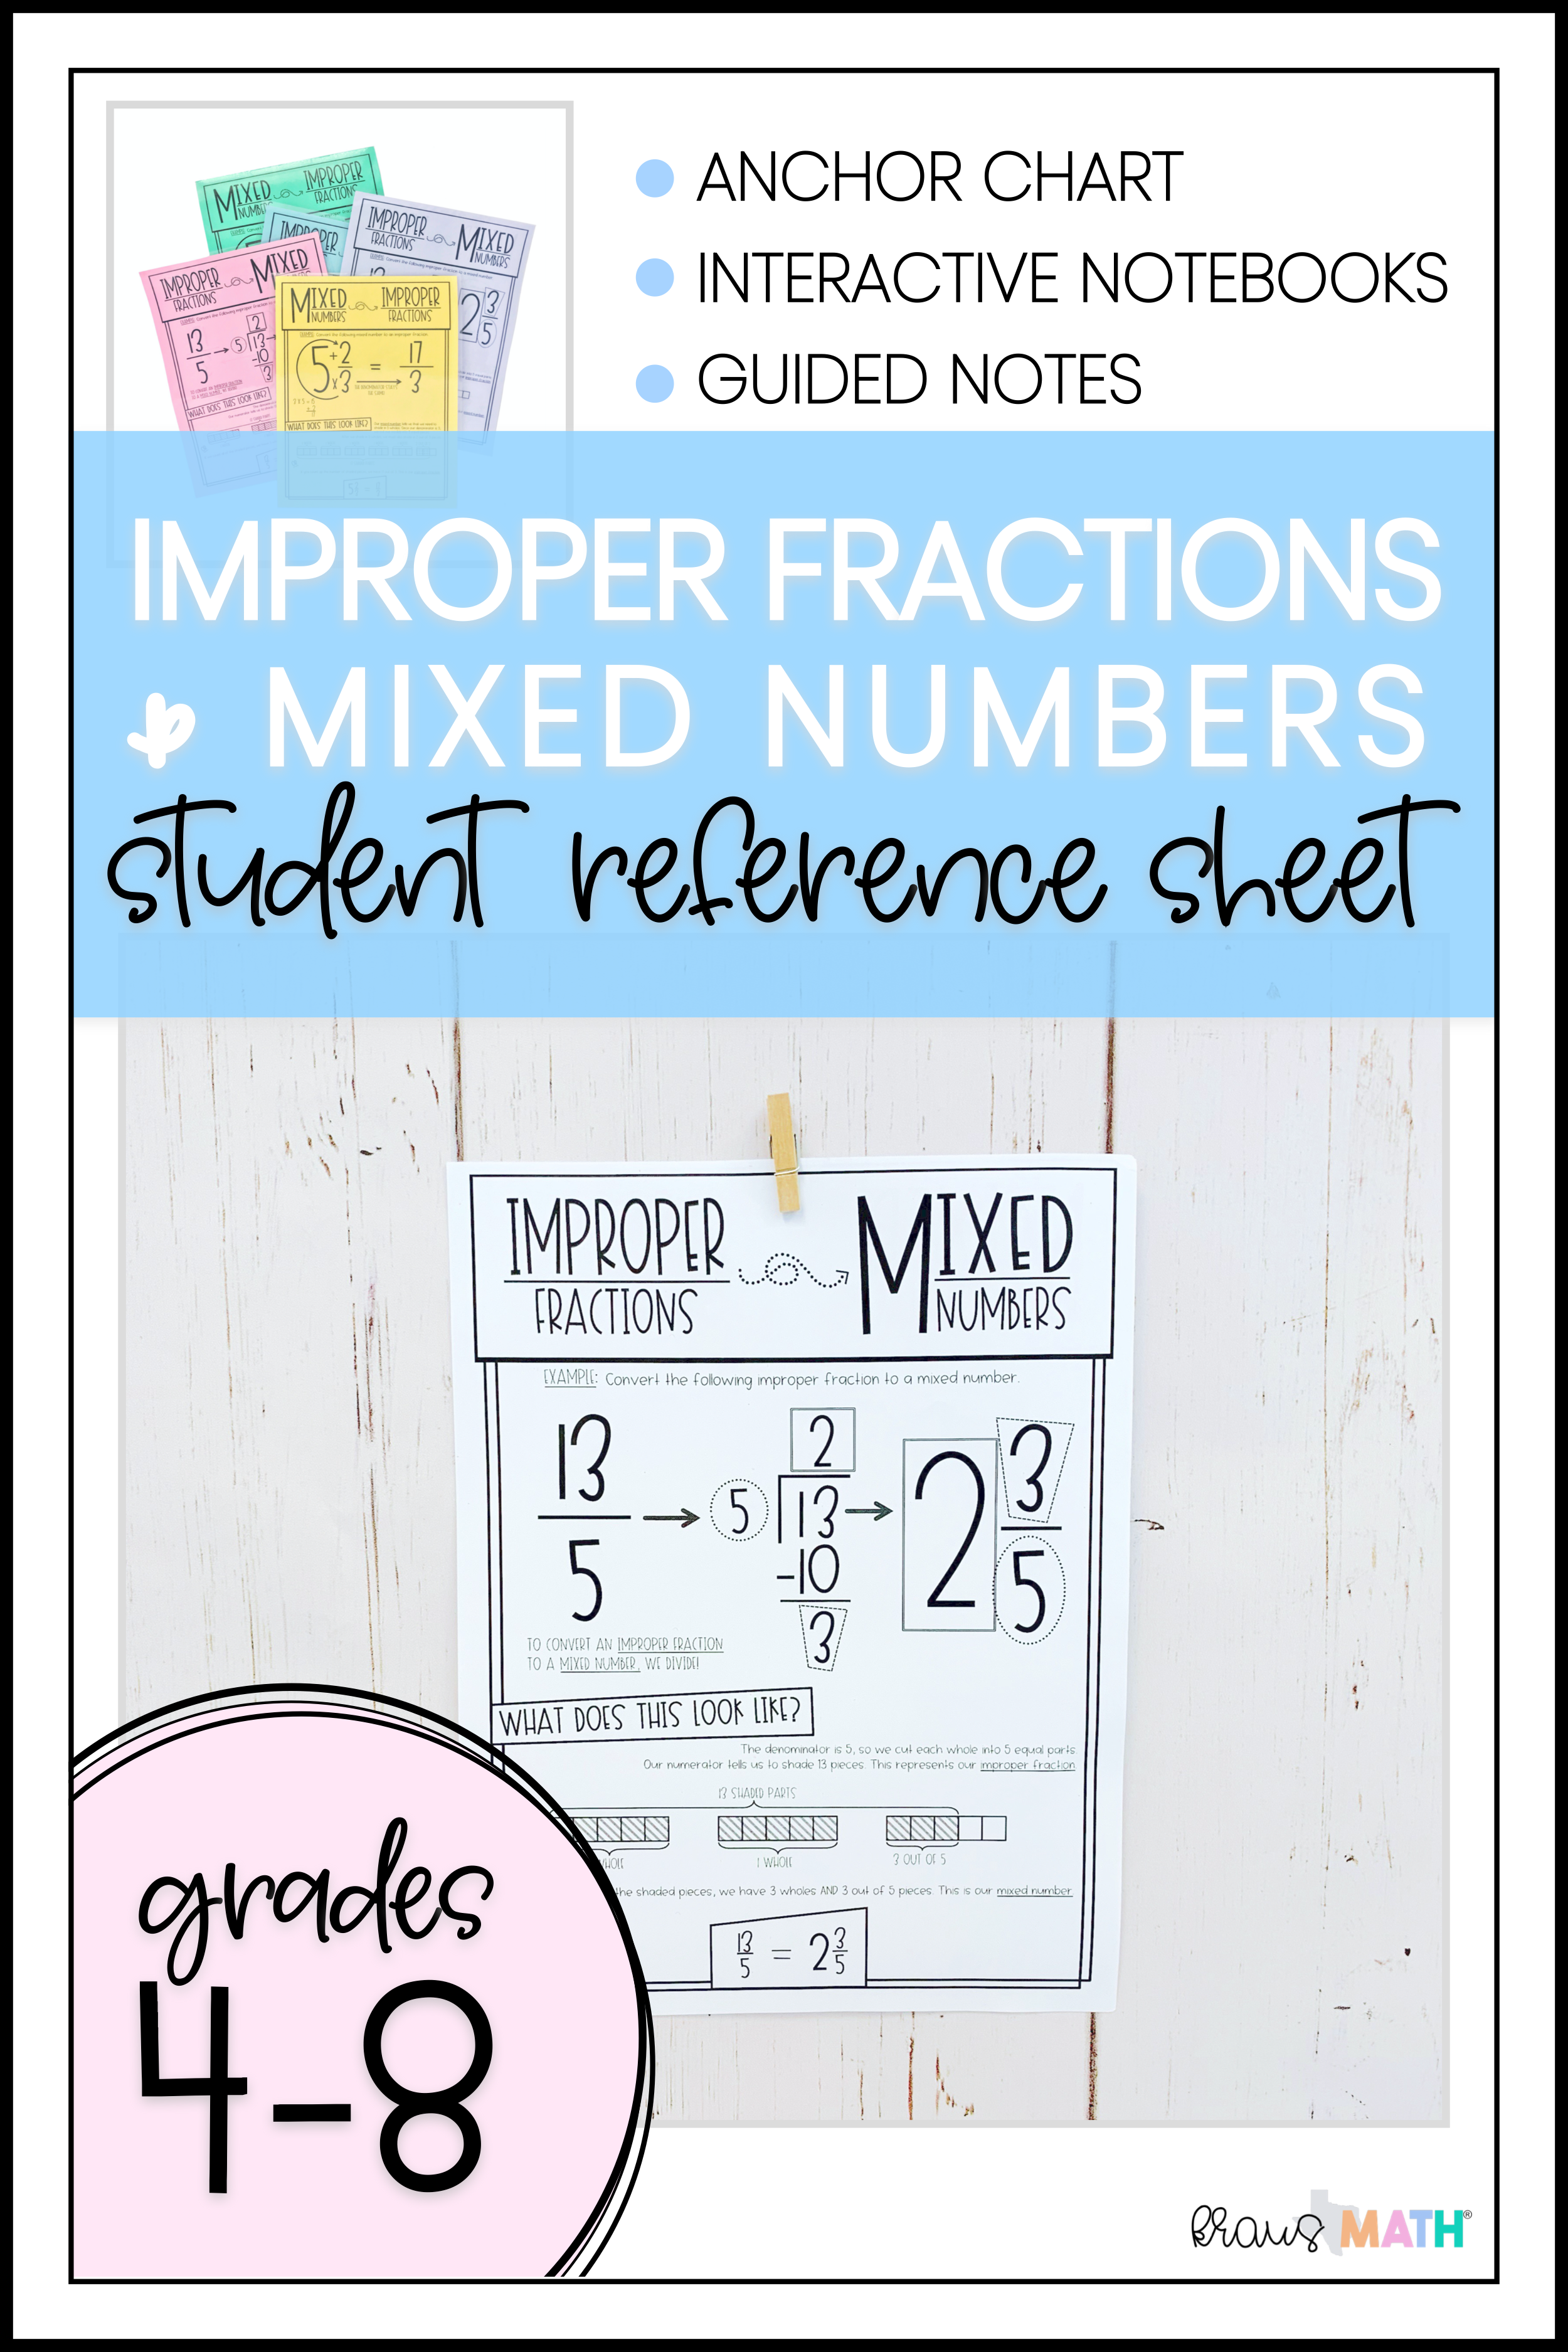 Improper Fractions Mixed Numbers Anchor Chart Kraus Math In 2020 Elementary Math Middle School Math Anchor Charts